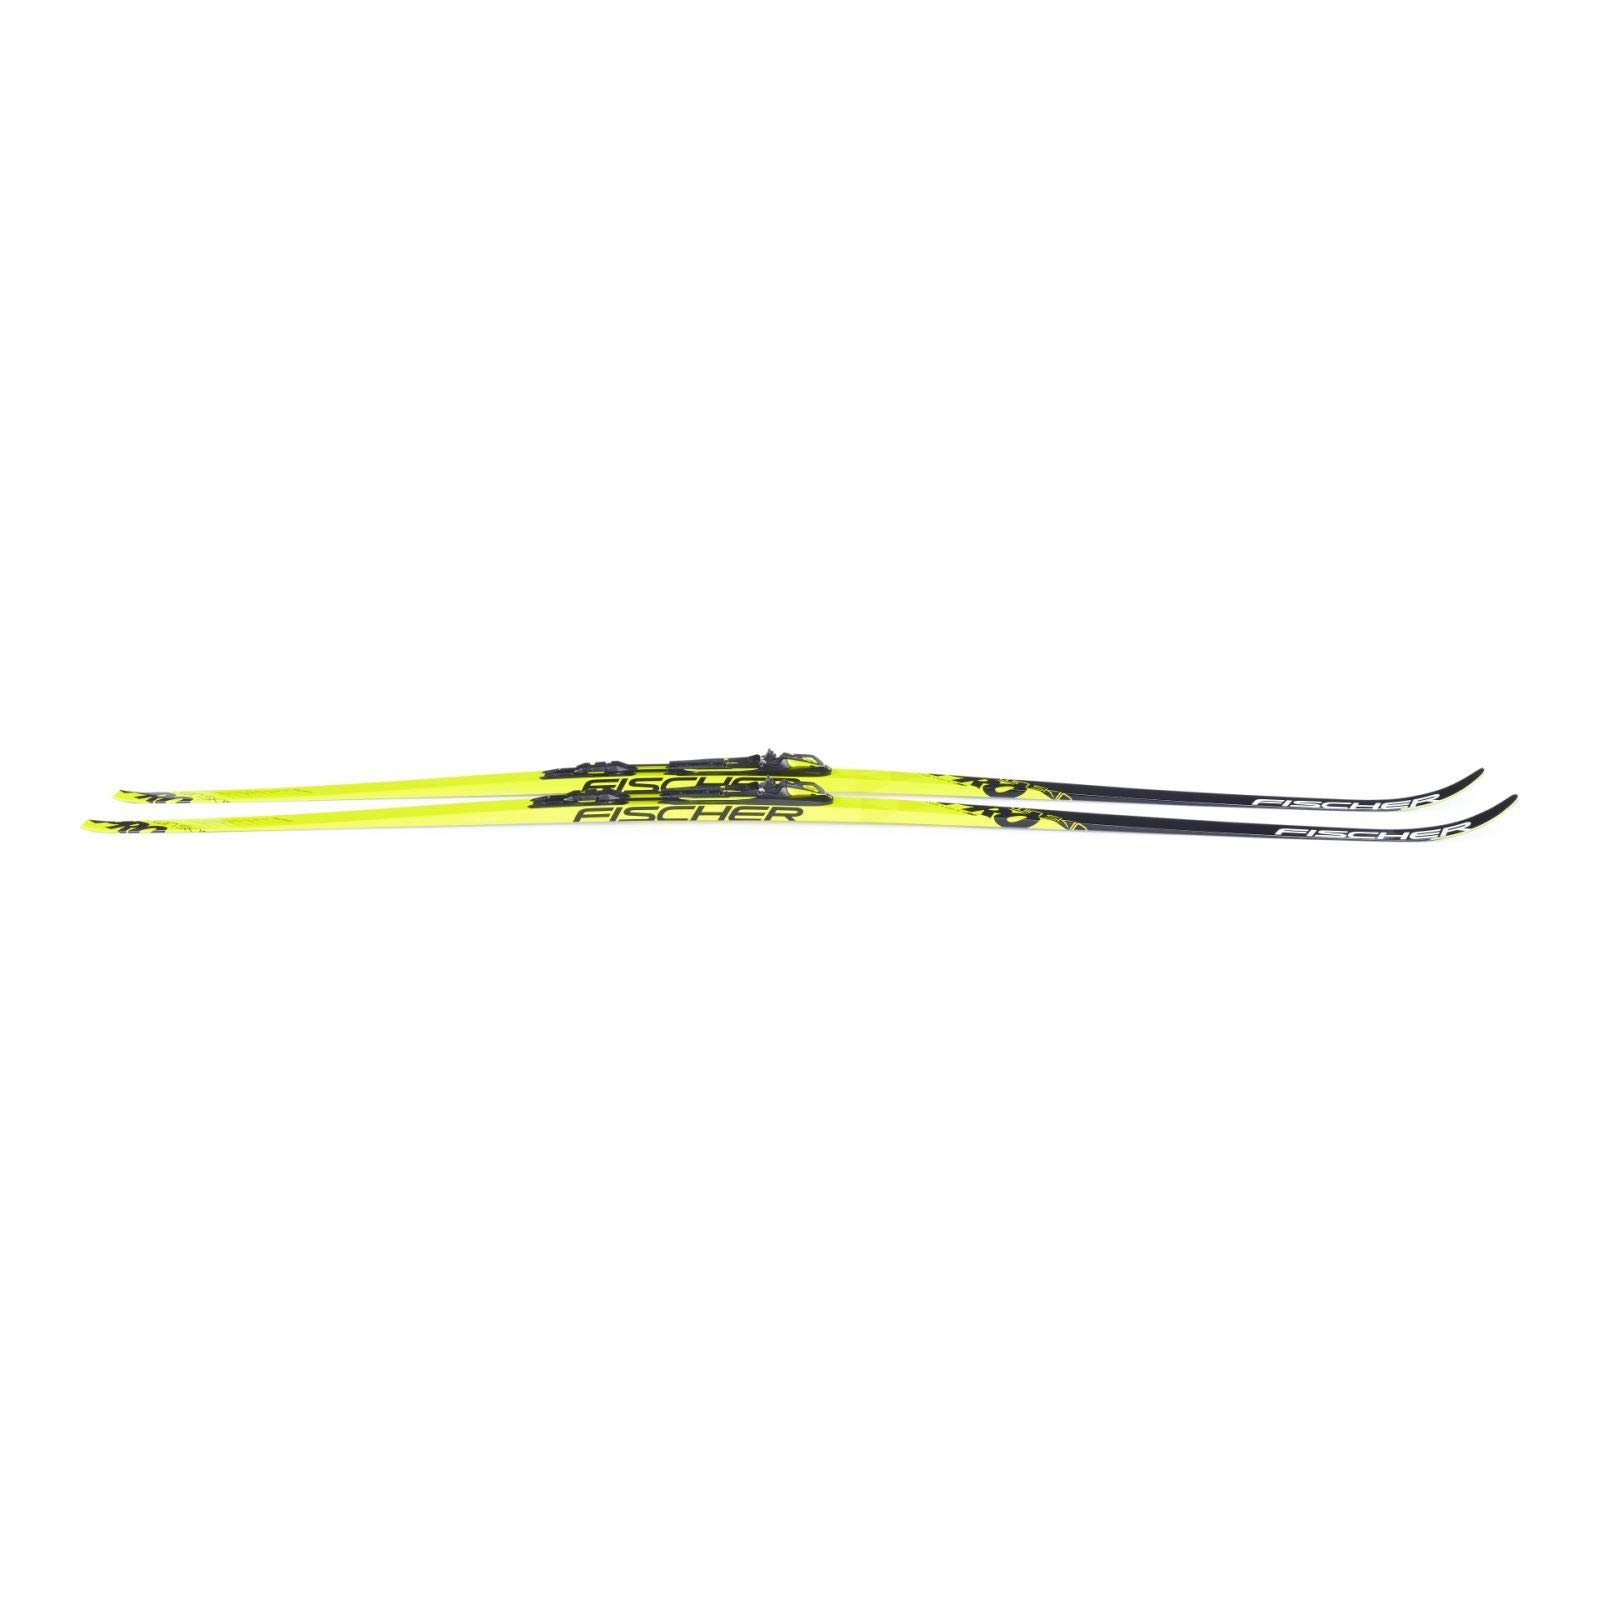 Fischer Twin Skin Pro Cross Country Skis - 182cm - One Color by Fischer